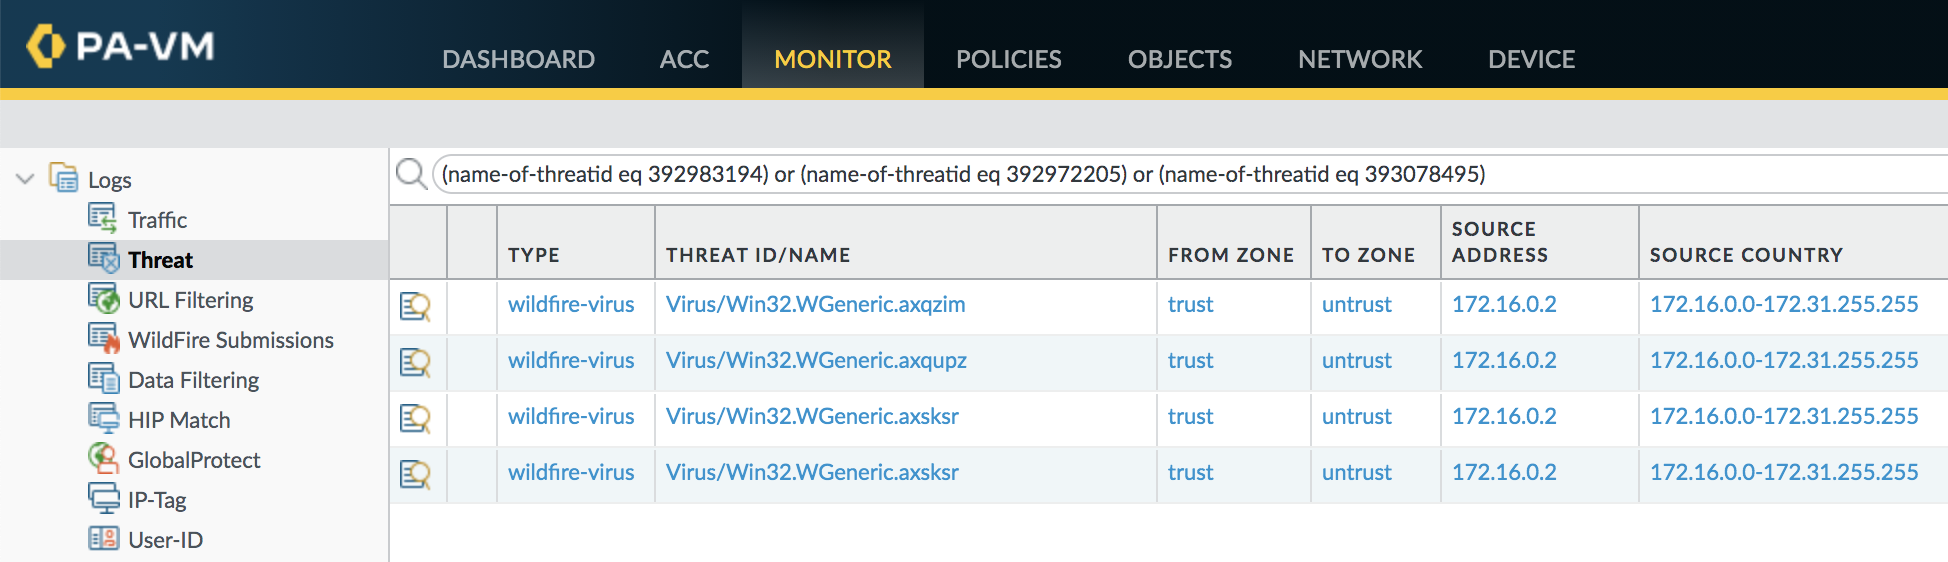 This example shows how WildFire and Threat Prevention can identify the specific threats associated with SUNBURST in the Threat log.